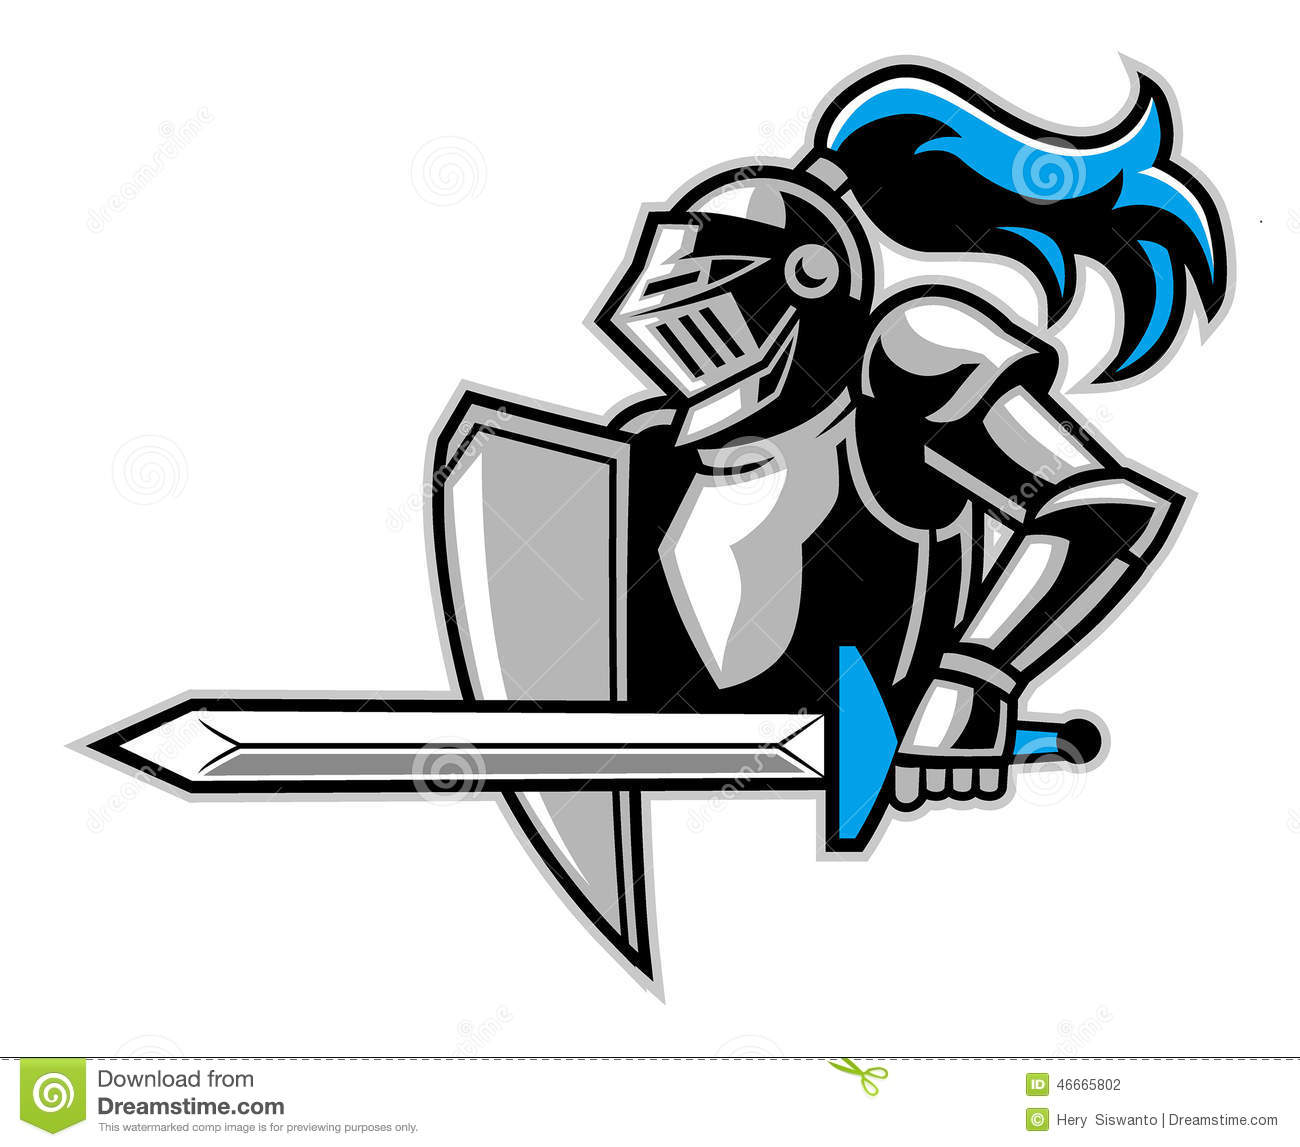 Knight with a big sword stock vector. Illustration of mascot.